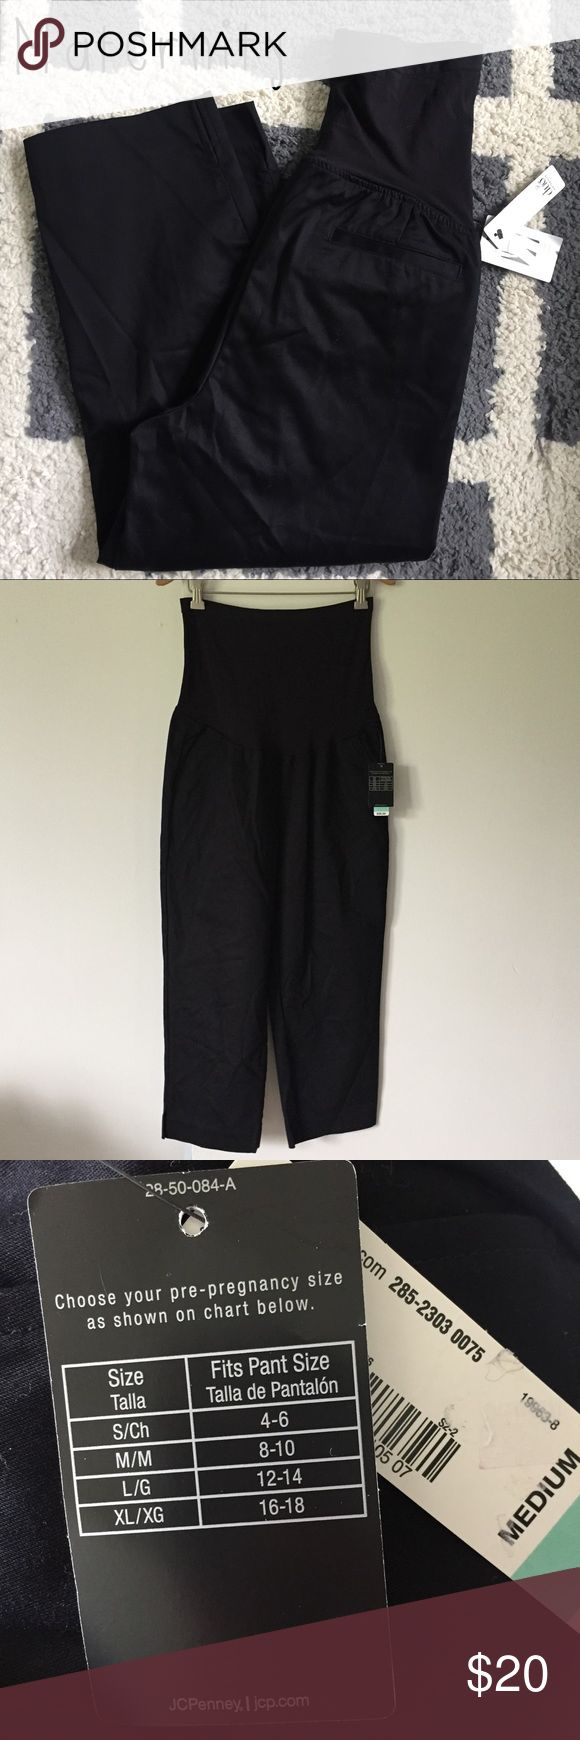 Maternity black cropped pants sz M. NWT! Maternity black cropped pants. NWT! Size: M (8-10 per tag). Inseam: 22 inches. Full belly panel. Loose fit. Cropped style. Pockets. Brand new. Perfect for casual wear or dressed up for work or a night out! duo maternity Pants Ankle & Cropped